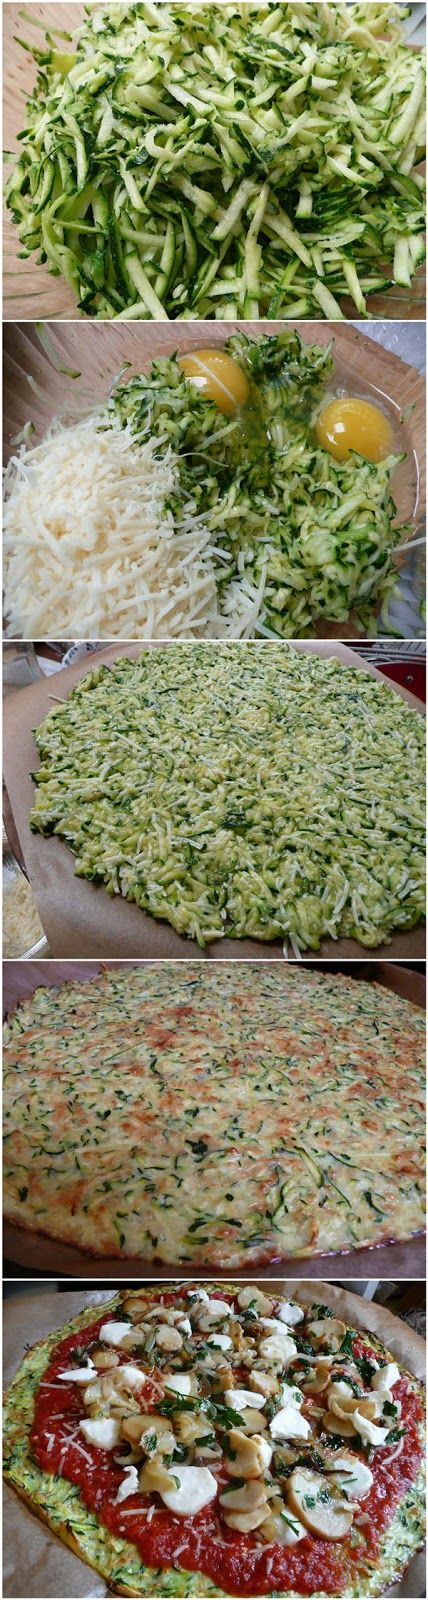 Zucchini Crust Pizza [ CaptainMarketing.com ] #food #online #marketing